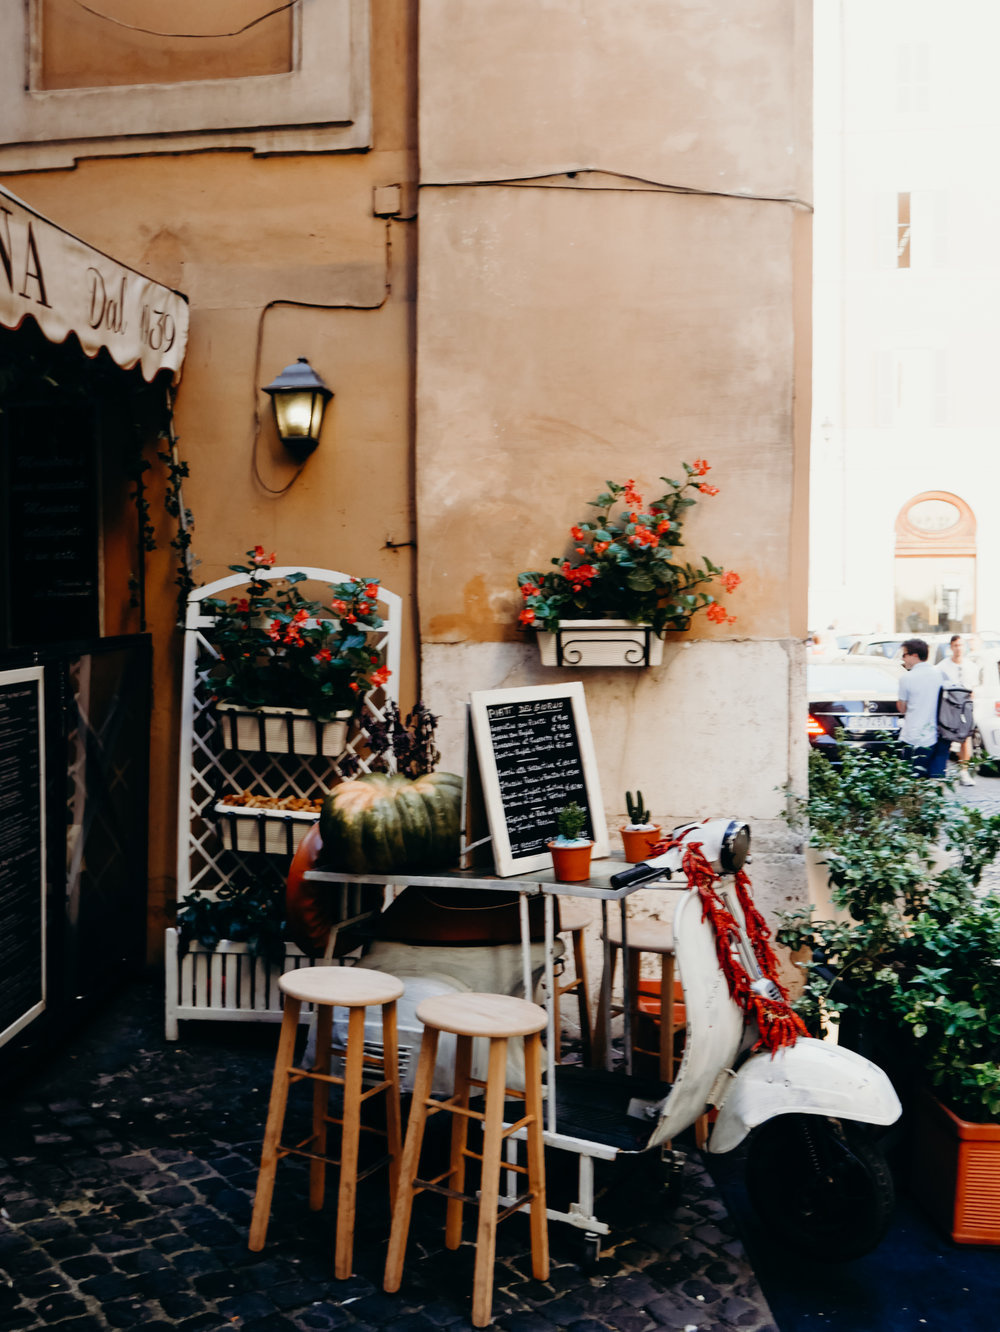 10 Things to Know Before Visiting Italy - Be Prepared for Smokers